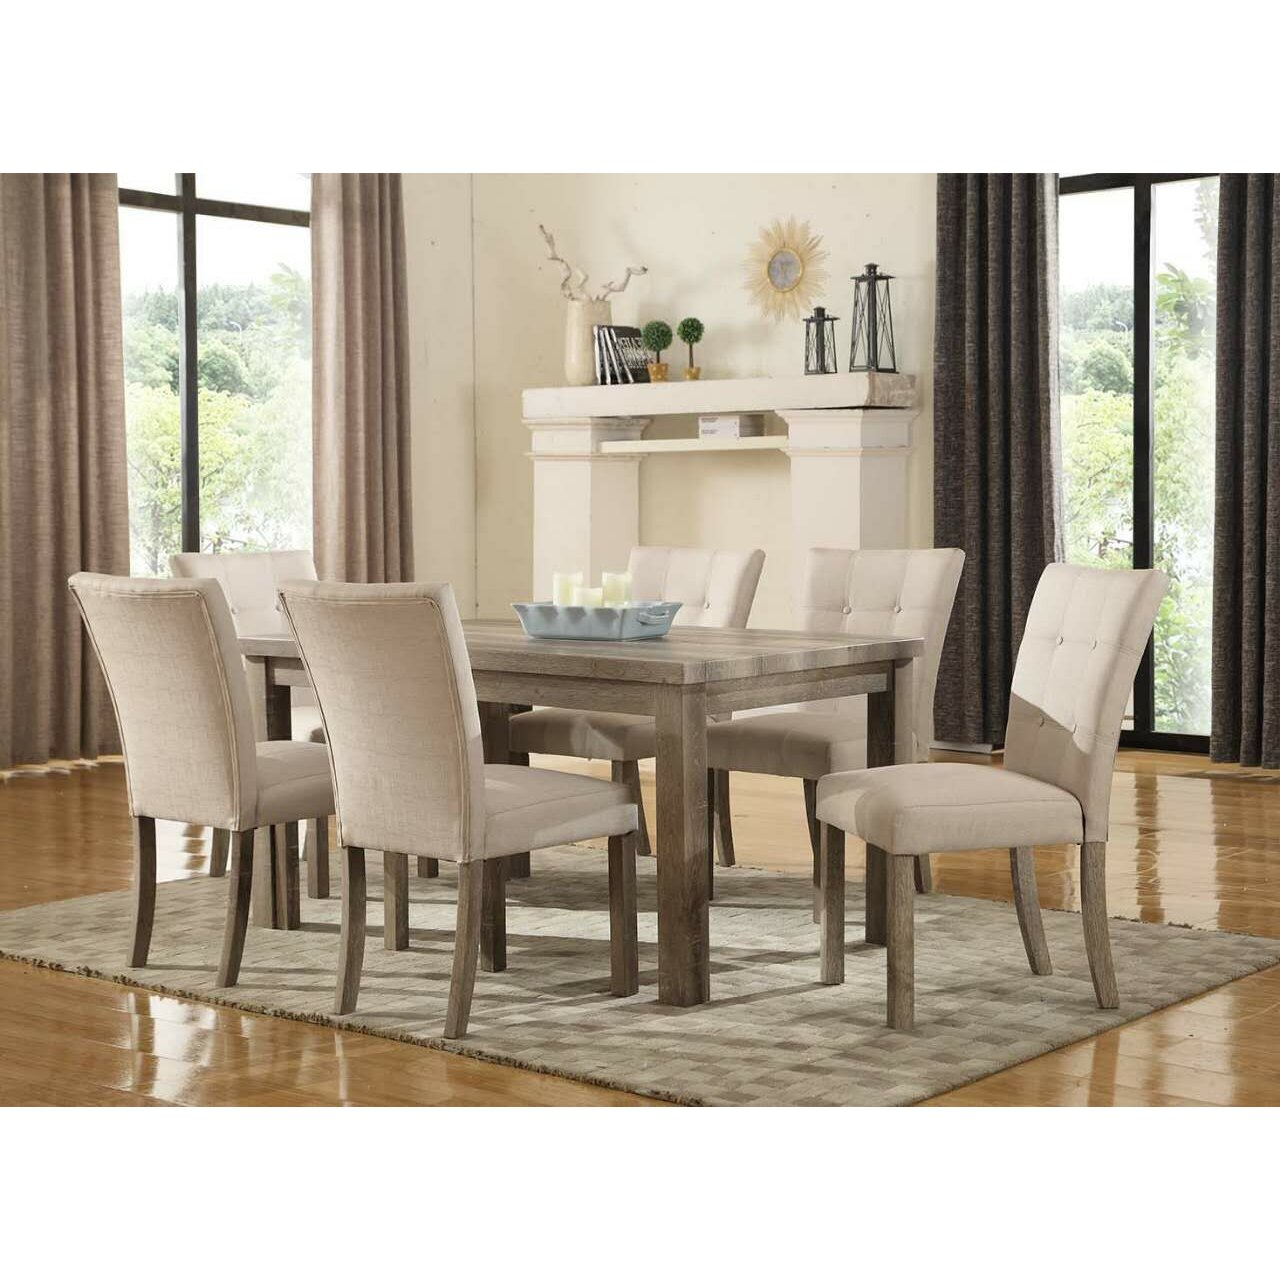 Dinning Set: Ultimate Accents Urban 7 Piece Dining Set & Reviews